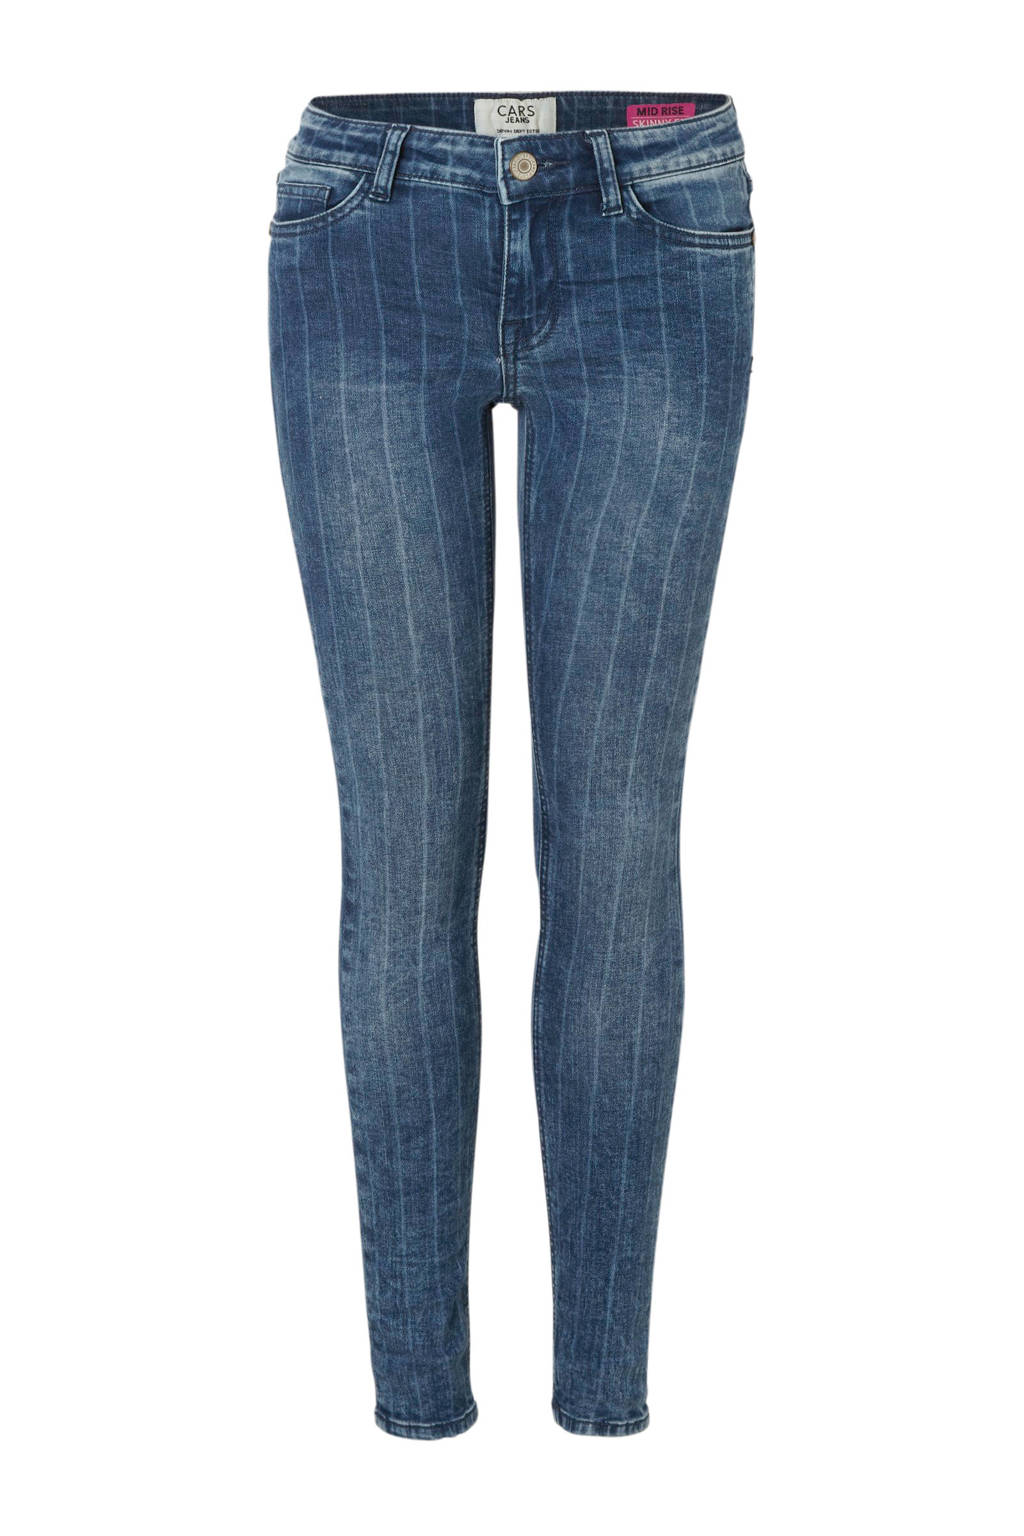 Cars gestreepte skinny fit jeans Maggy blauw, Stonewashed